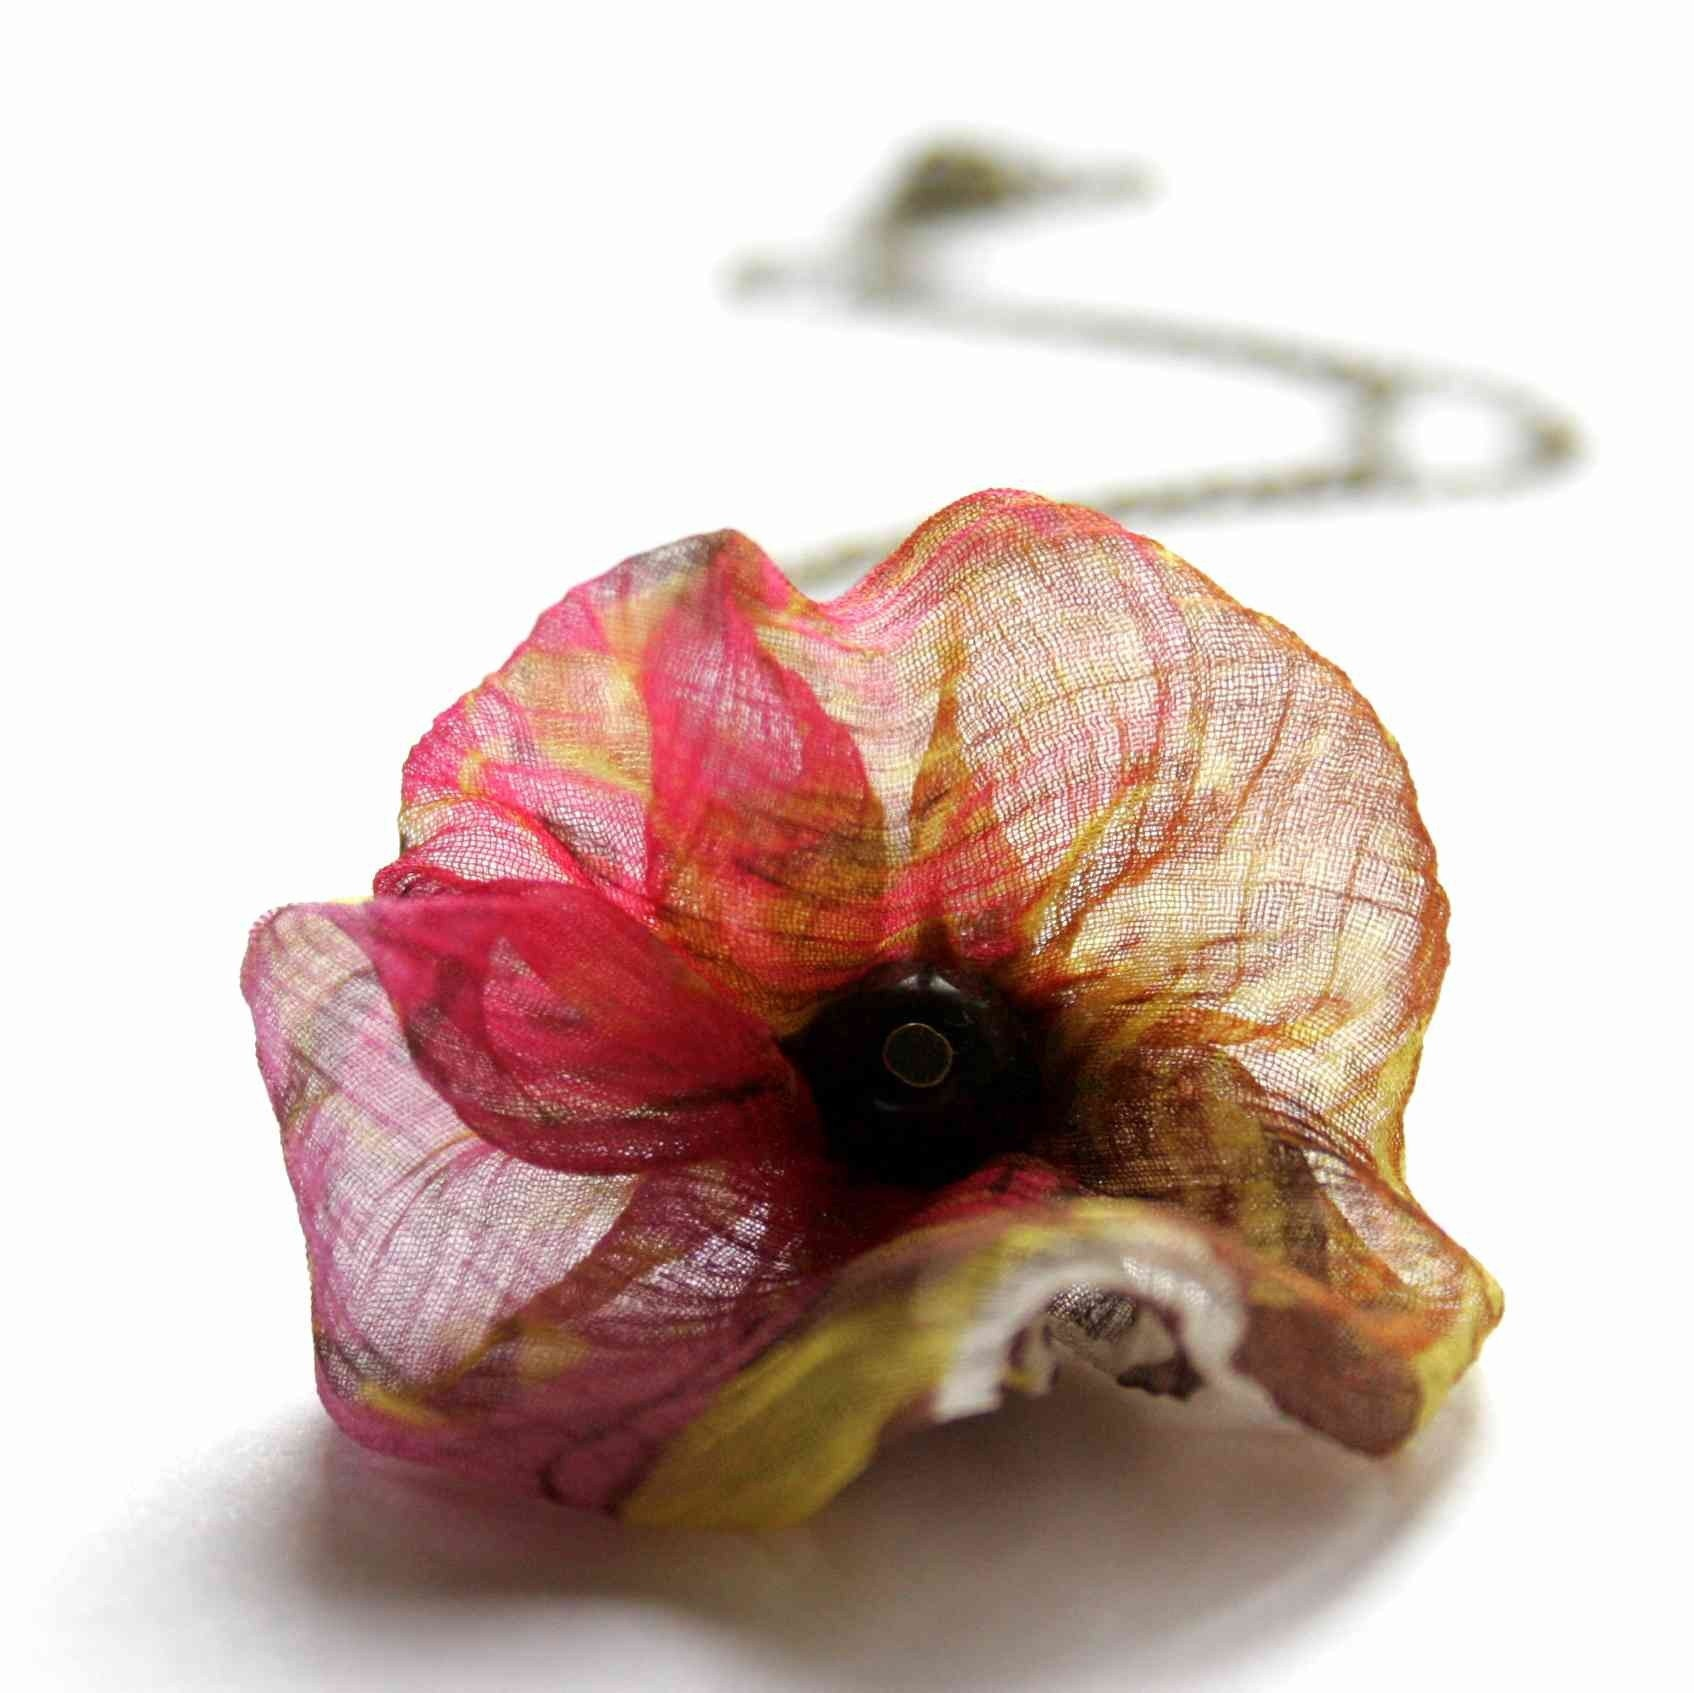 Melon and